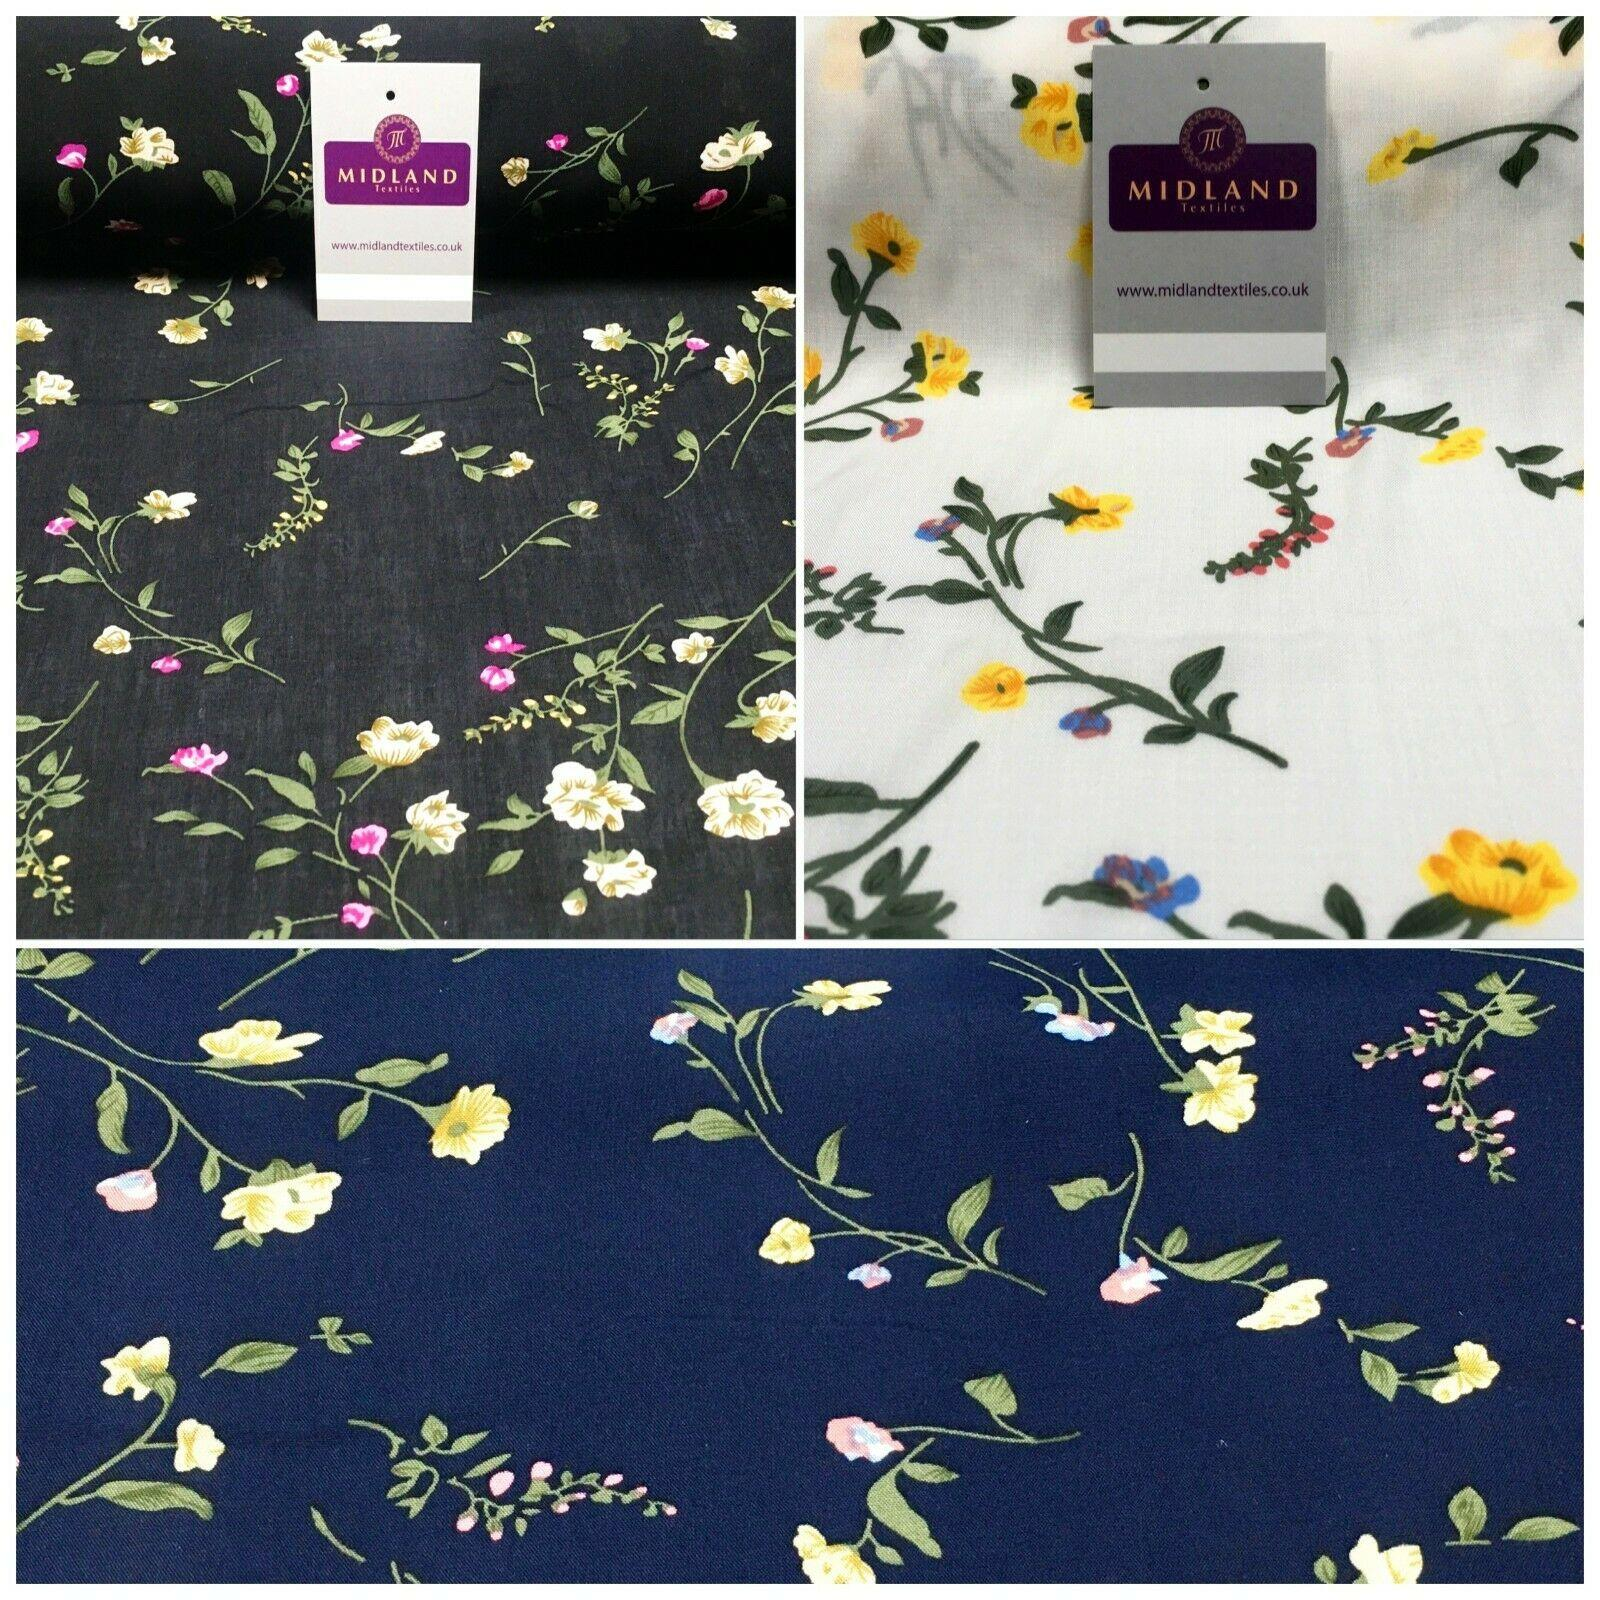 Floral Printed Rayon Viscose Poplin dress Fabric 150 cm MA1254 Mtex